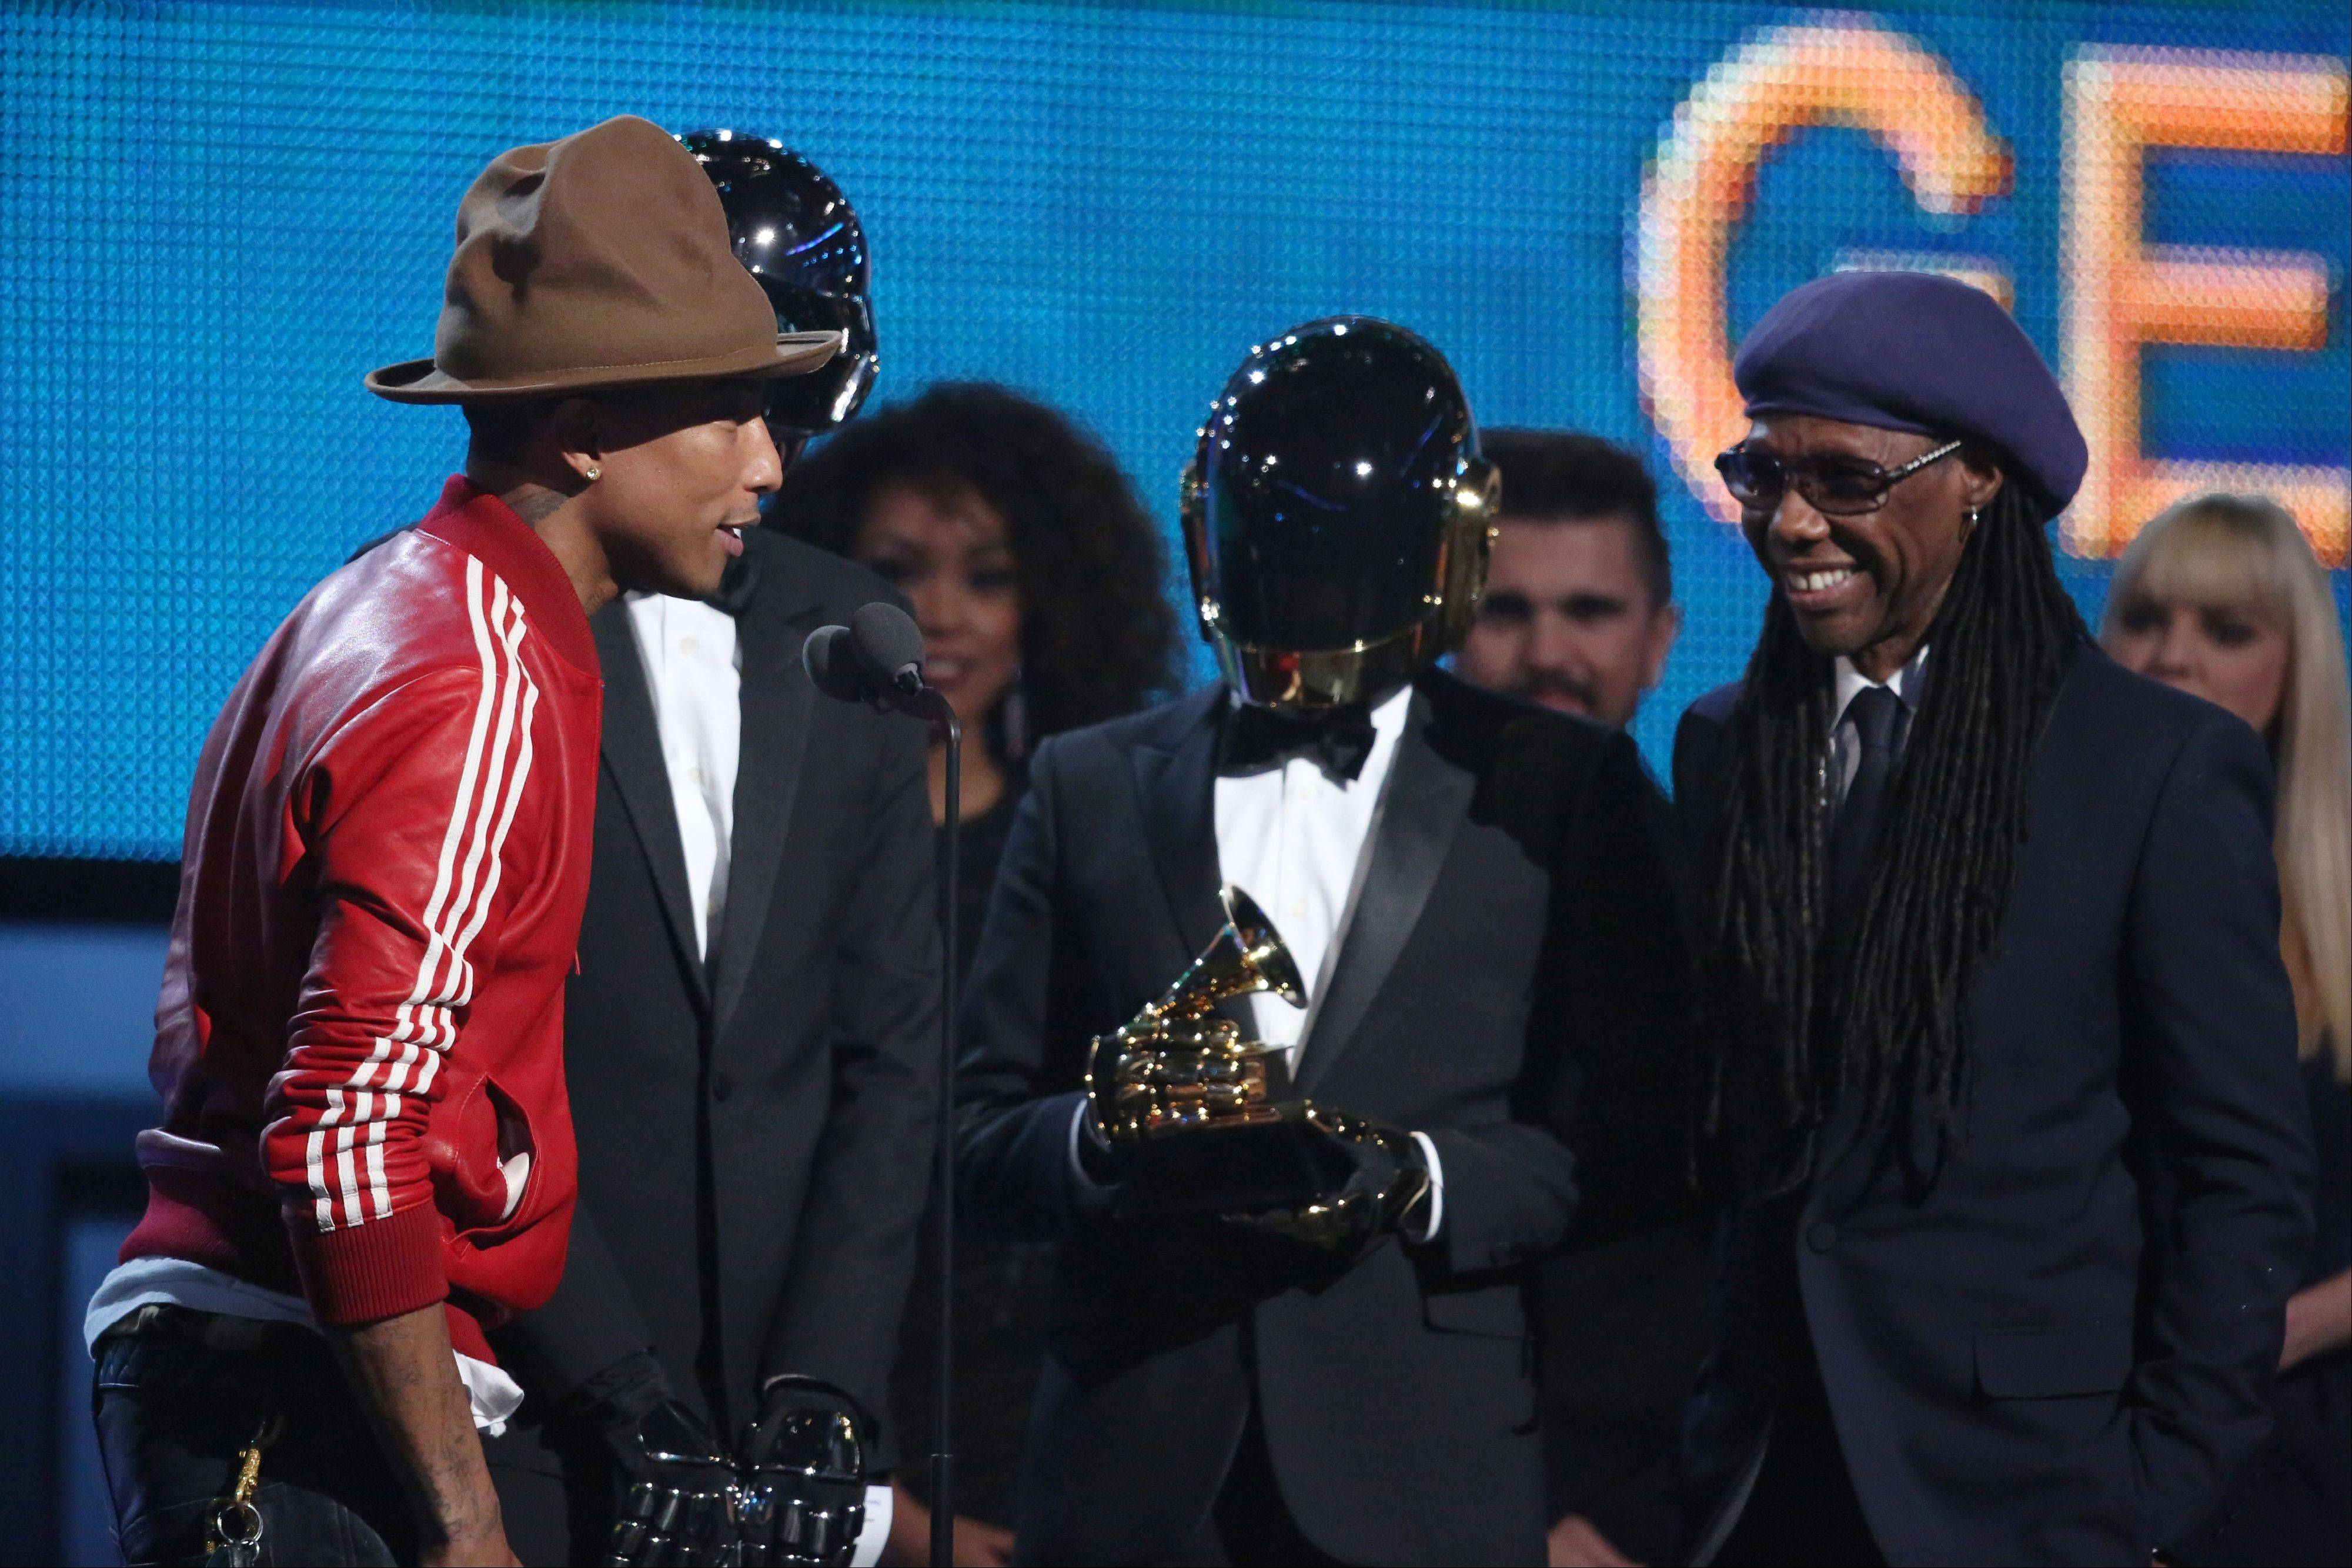 Pharrell Williams, from left, Daft Punk and Nile Rodgers accept the award for best pop duo/group performance at the 56th annual Grammy Awards at Staples Center on Sunday in Los Angeles.